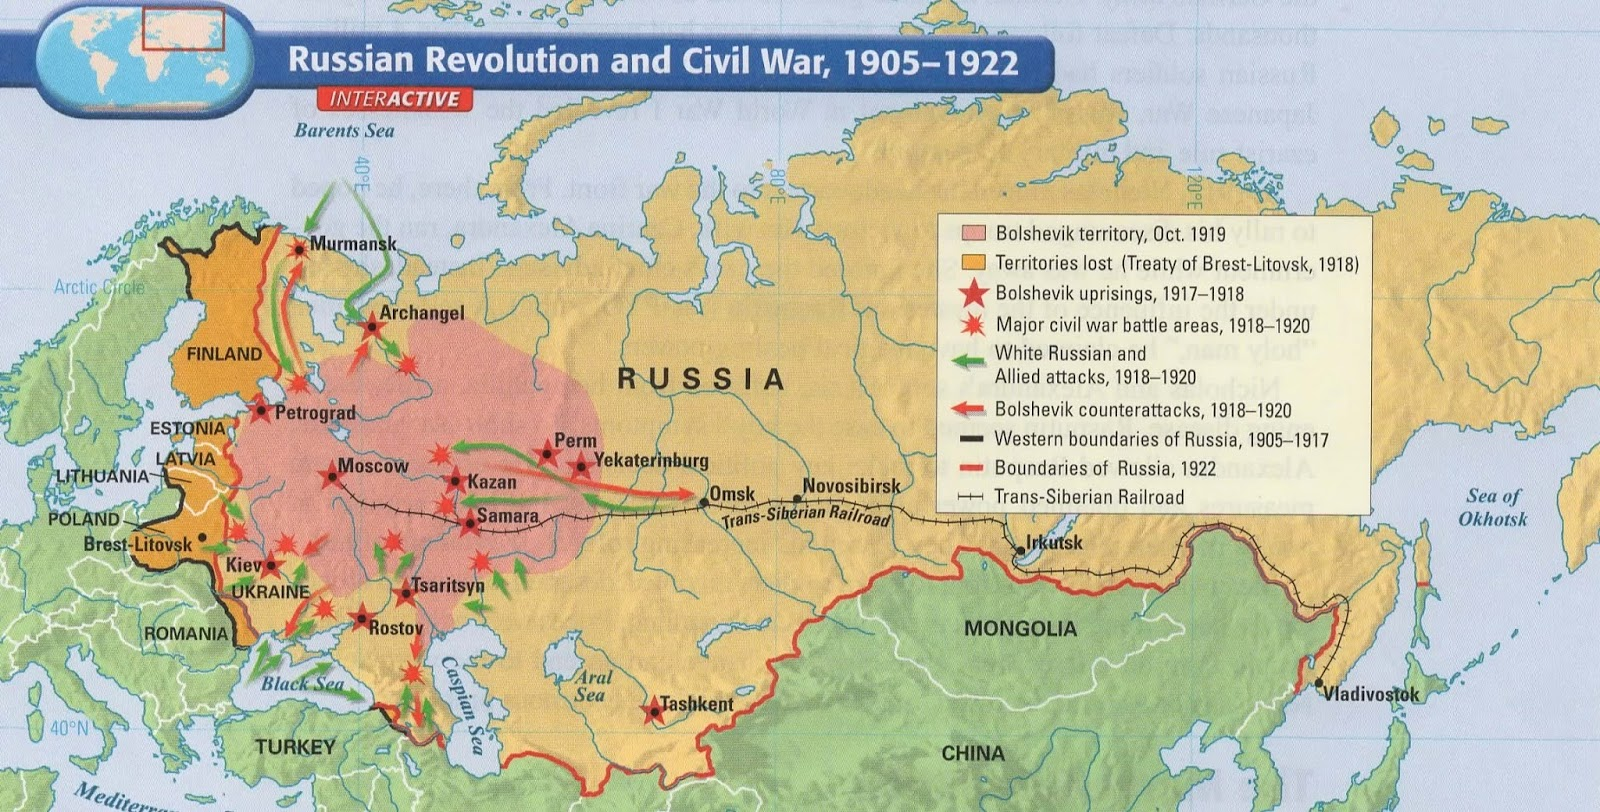 a history of russian revolution of 1917 The russian revolution of 1917, led by stalin, trotsky and lenin was later described as 'the will of the people' - but how russian was this revolution really.